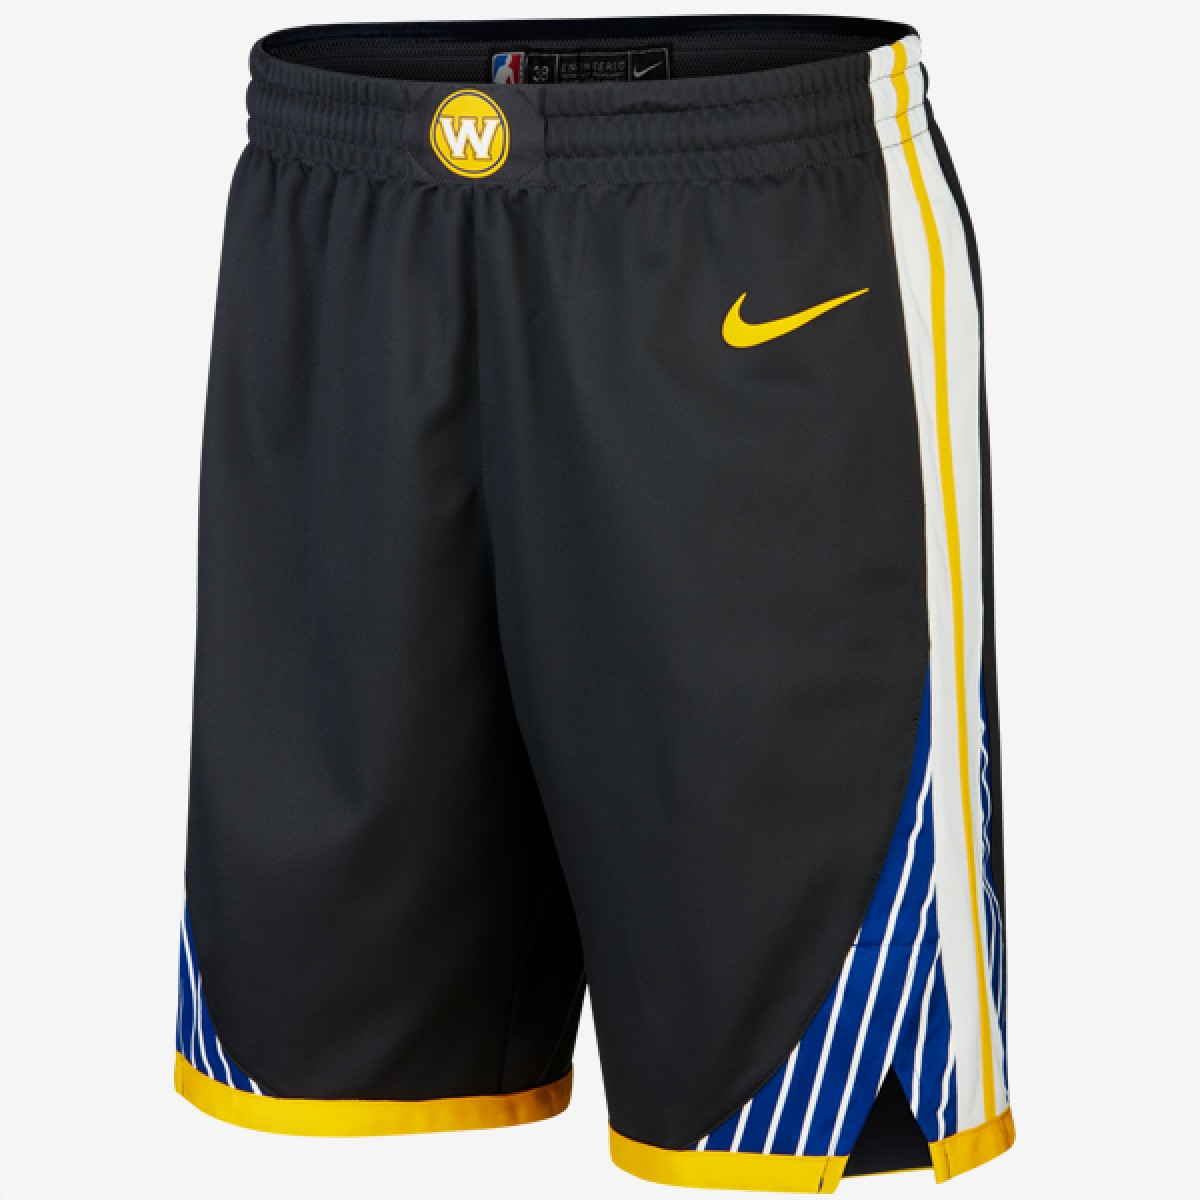 Nike NBA Warriors Authentic Short 'Statement Edition'